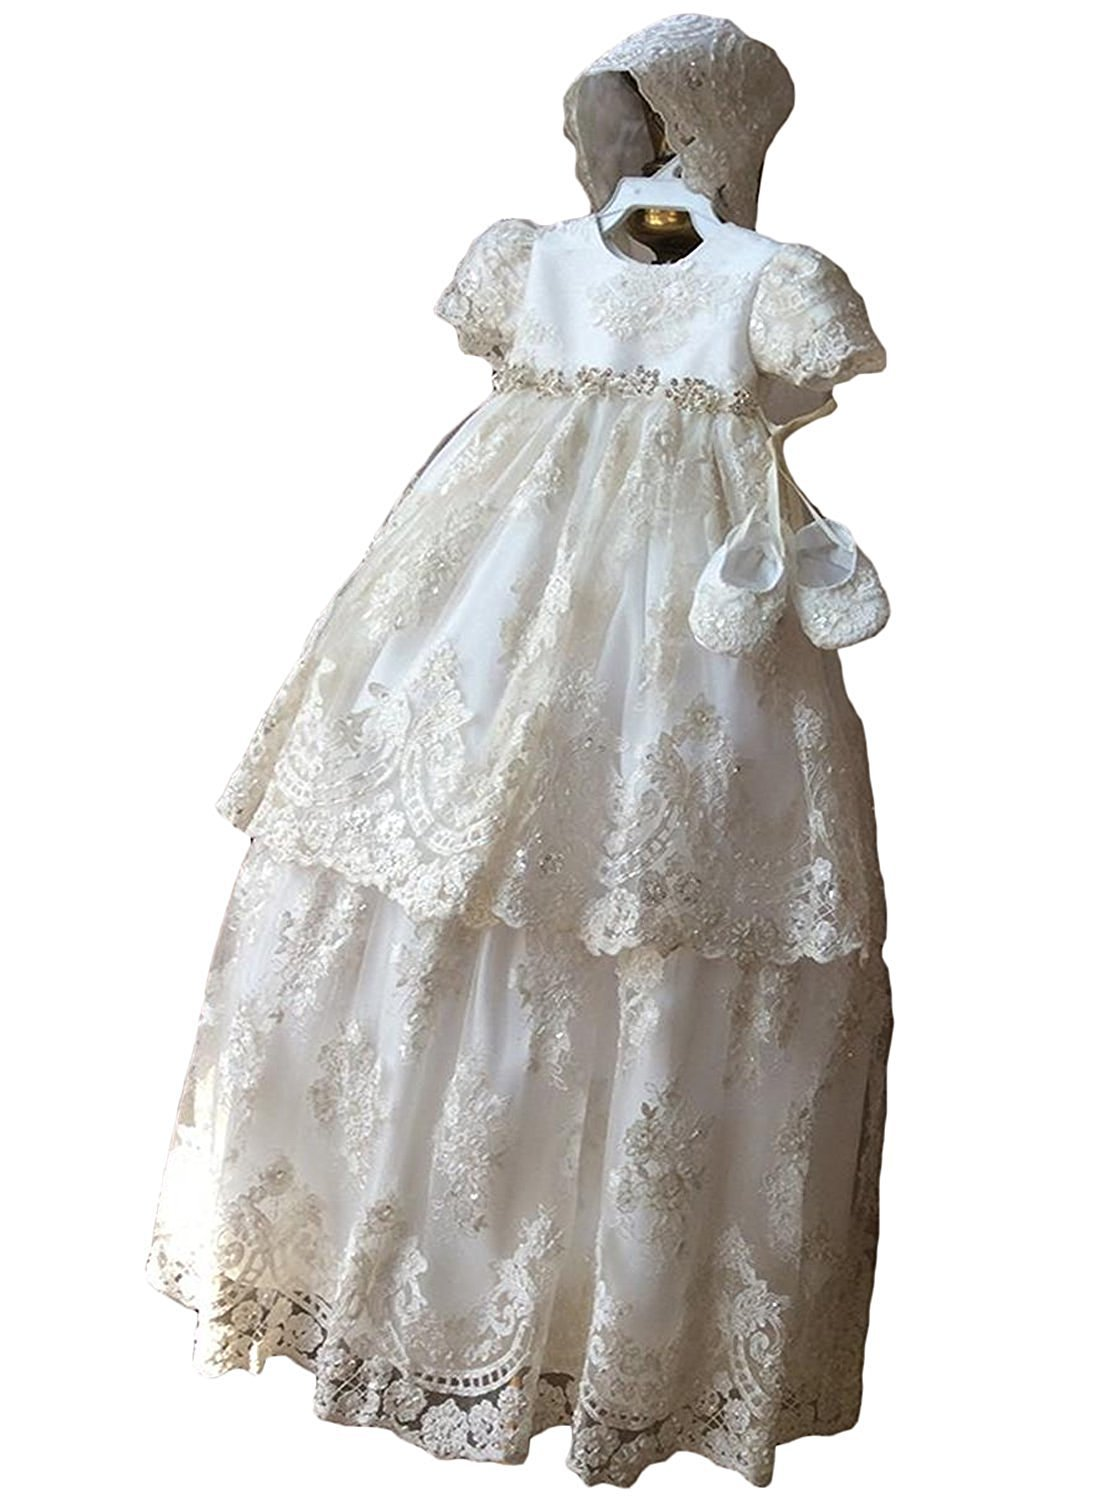 Banfvting Baby Girls Long Baptism Dress Lace Christening Gown With Bonnet